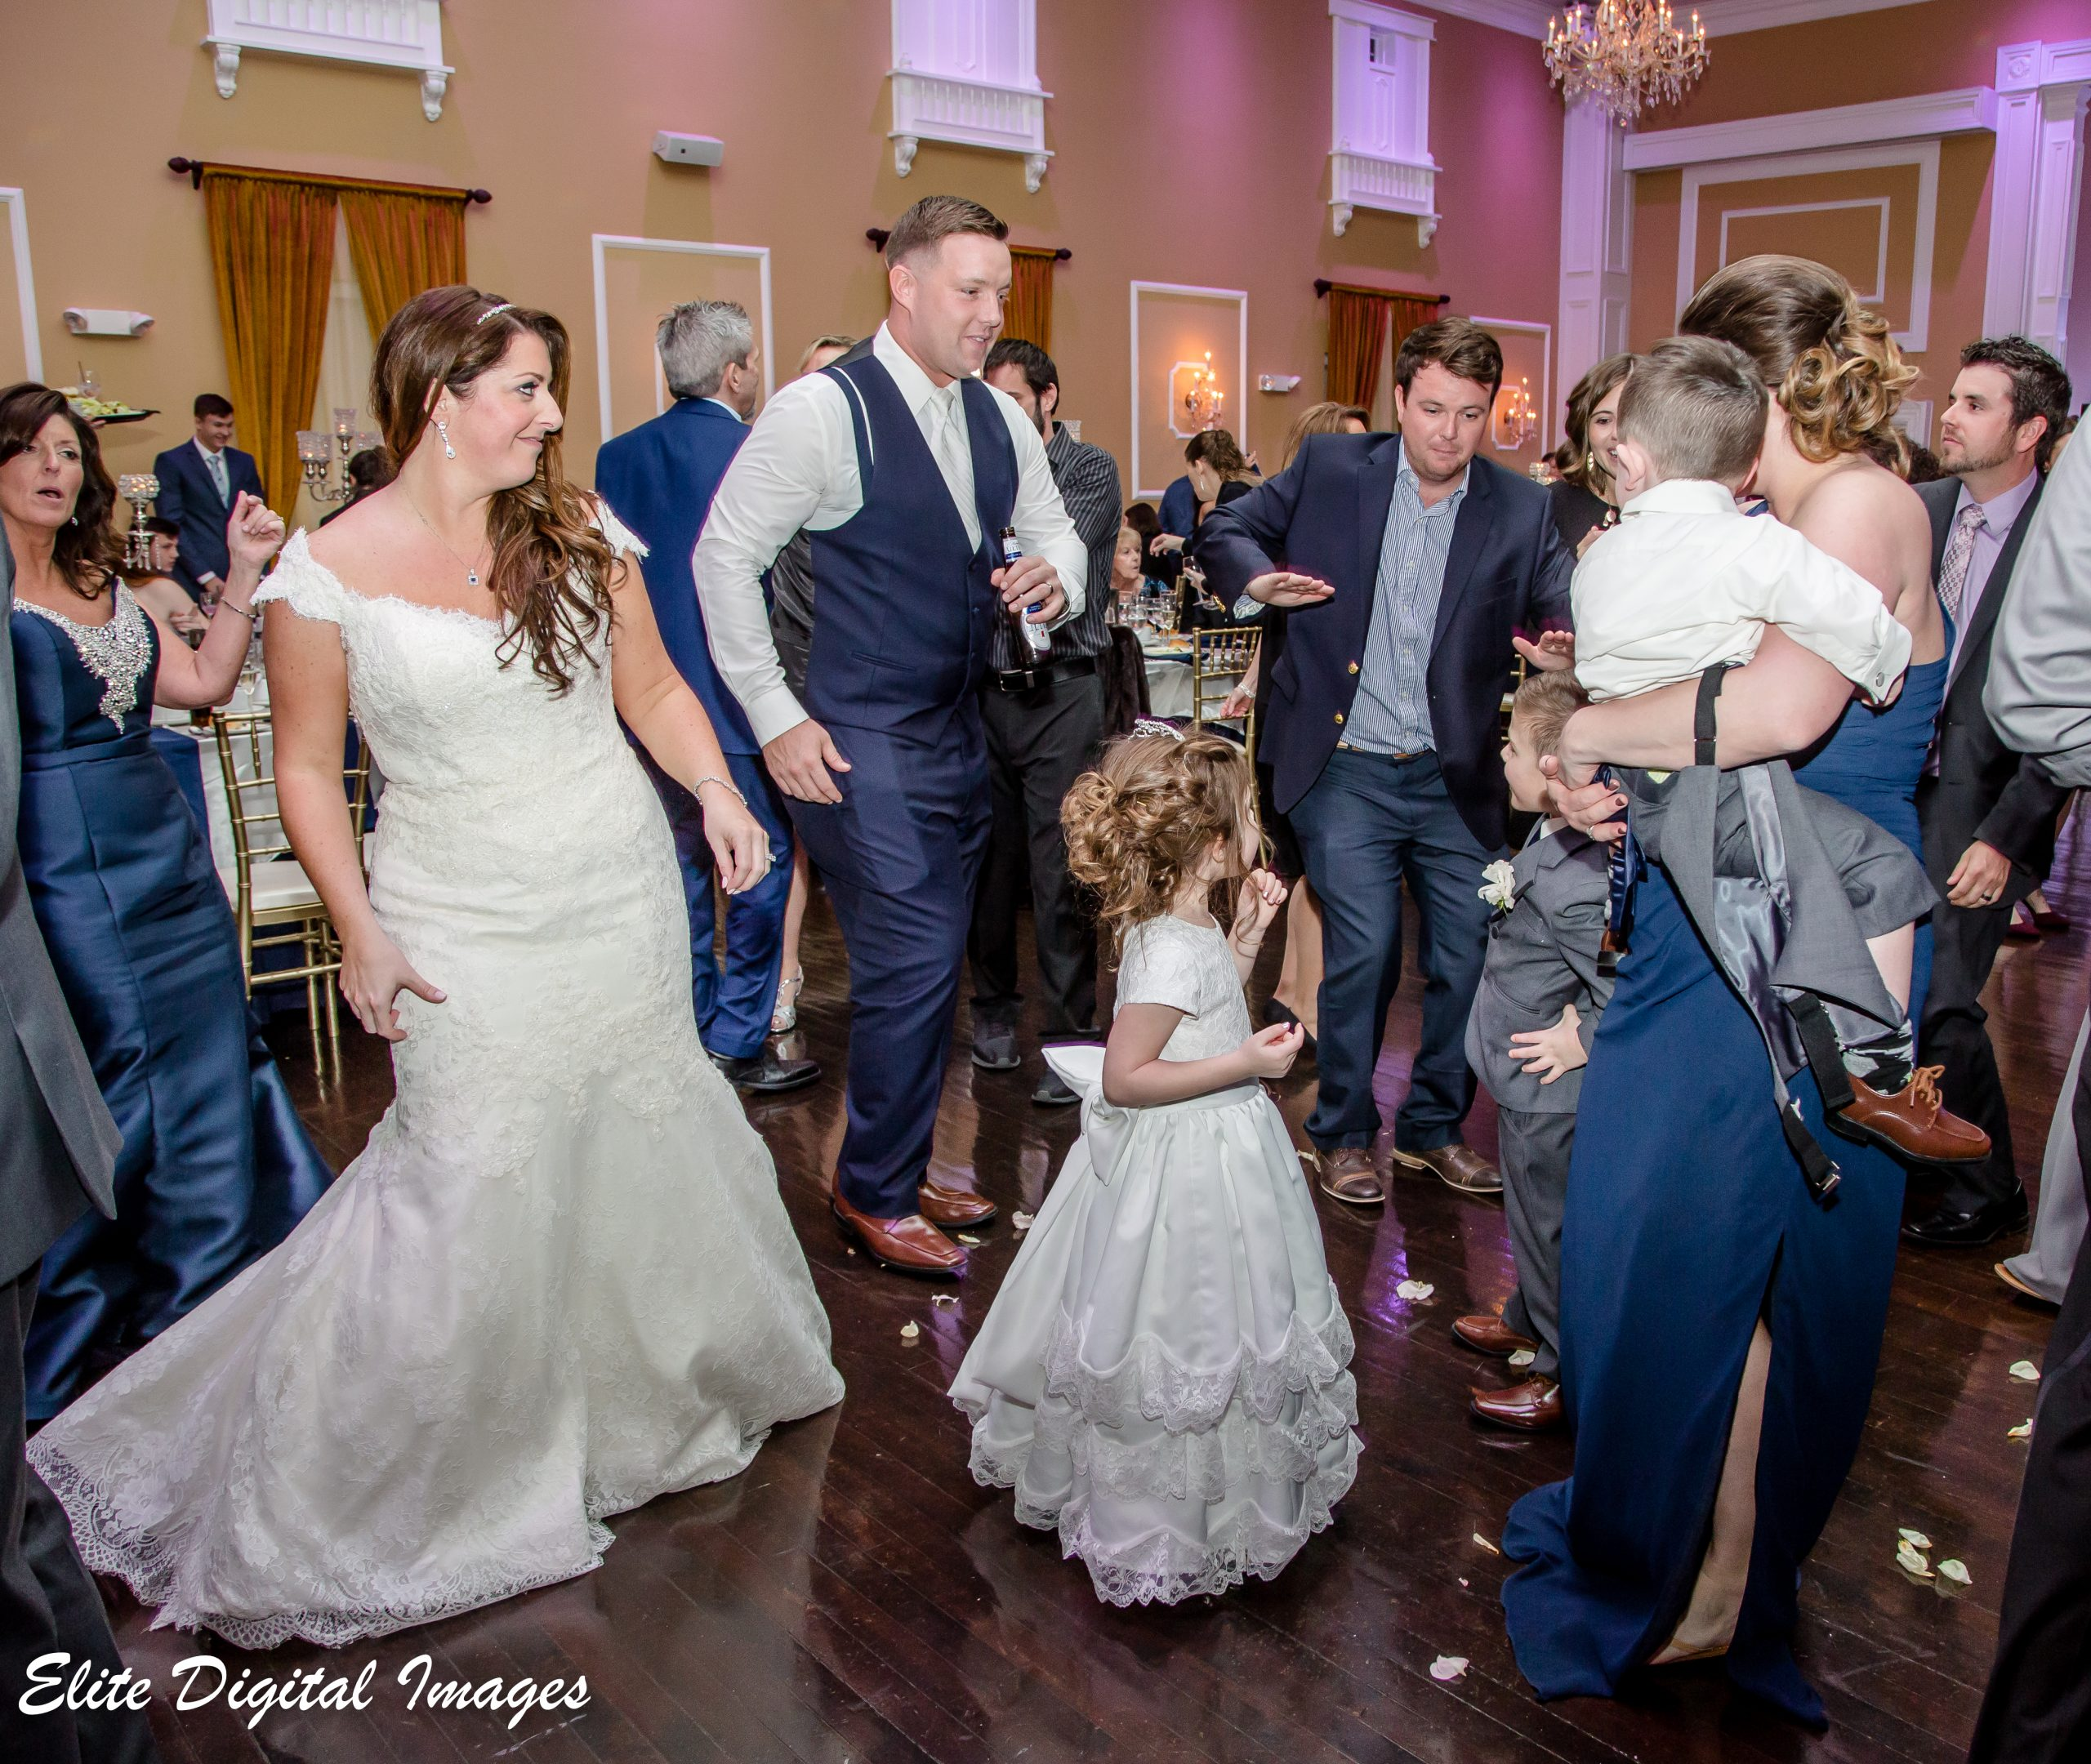 Elite Entertainment_ NJWedding_ EliteDigitalImages_Hamilton Manor_Caitlin and Sean 8